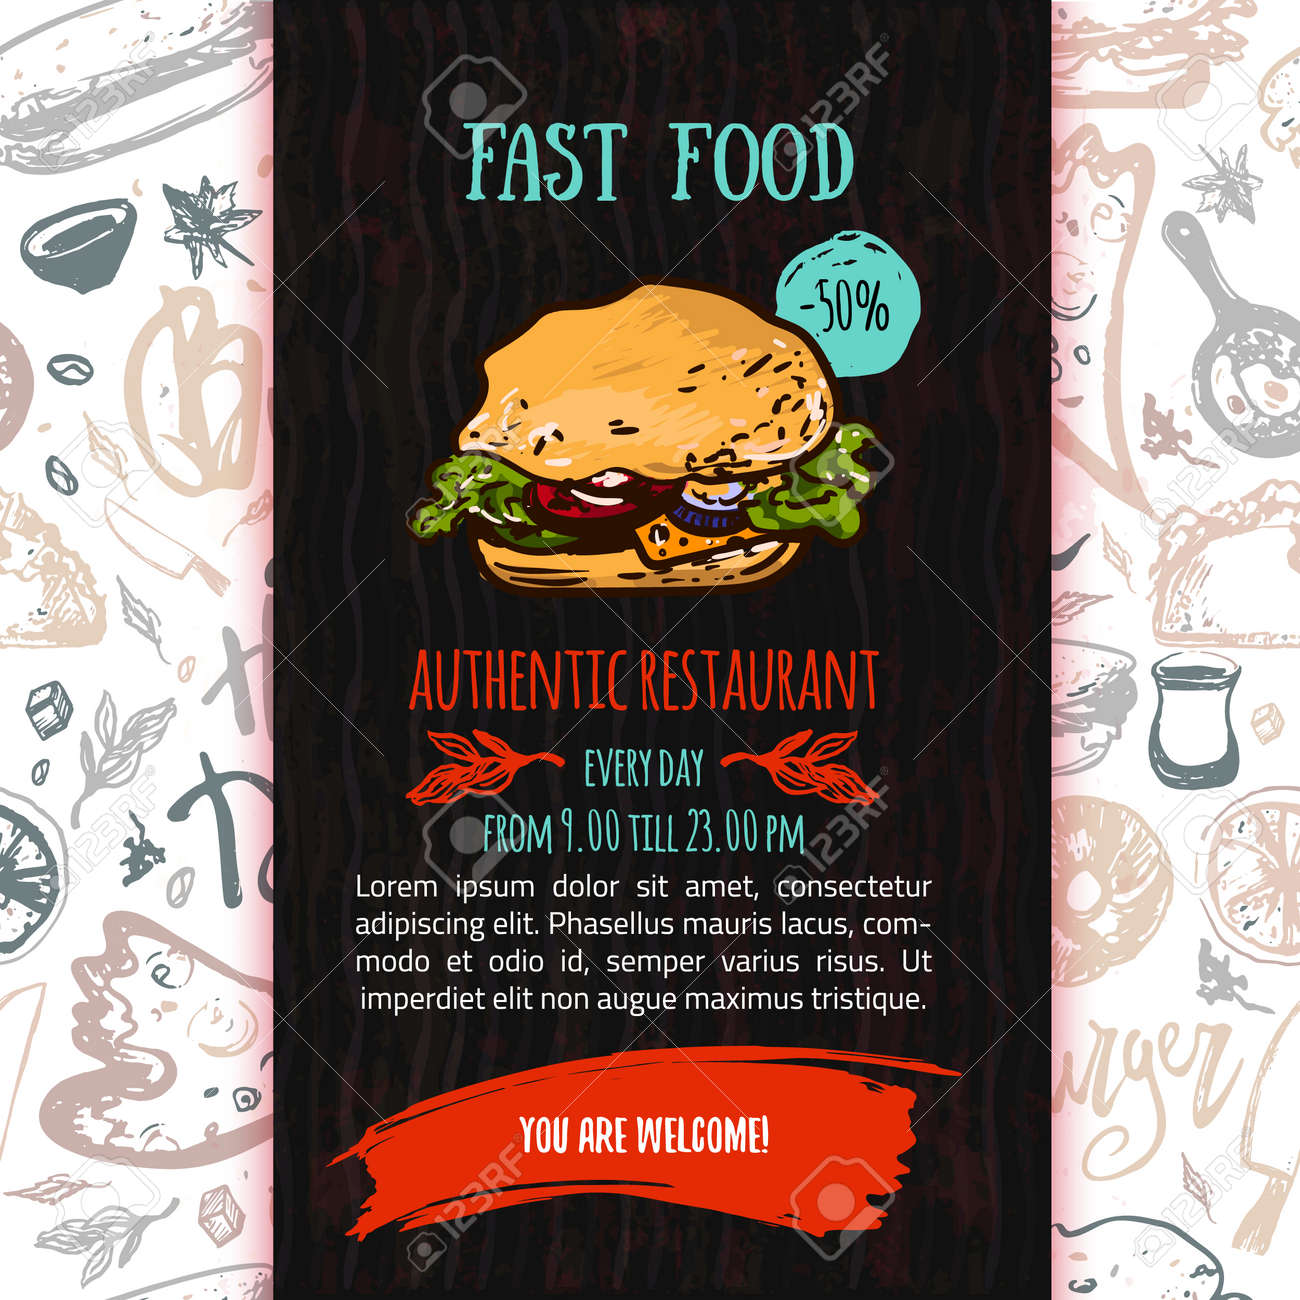 fast food menu design template with hand drawn vector illustration